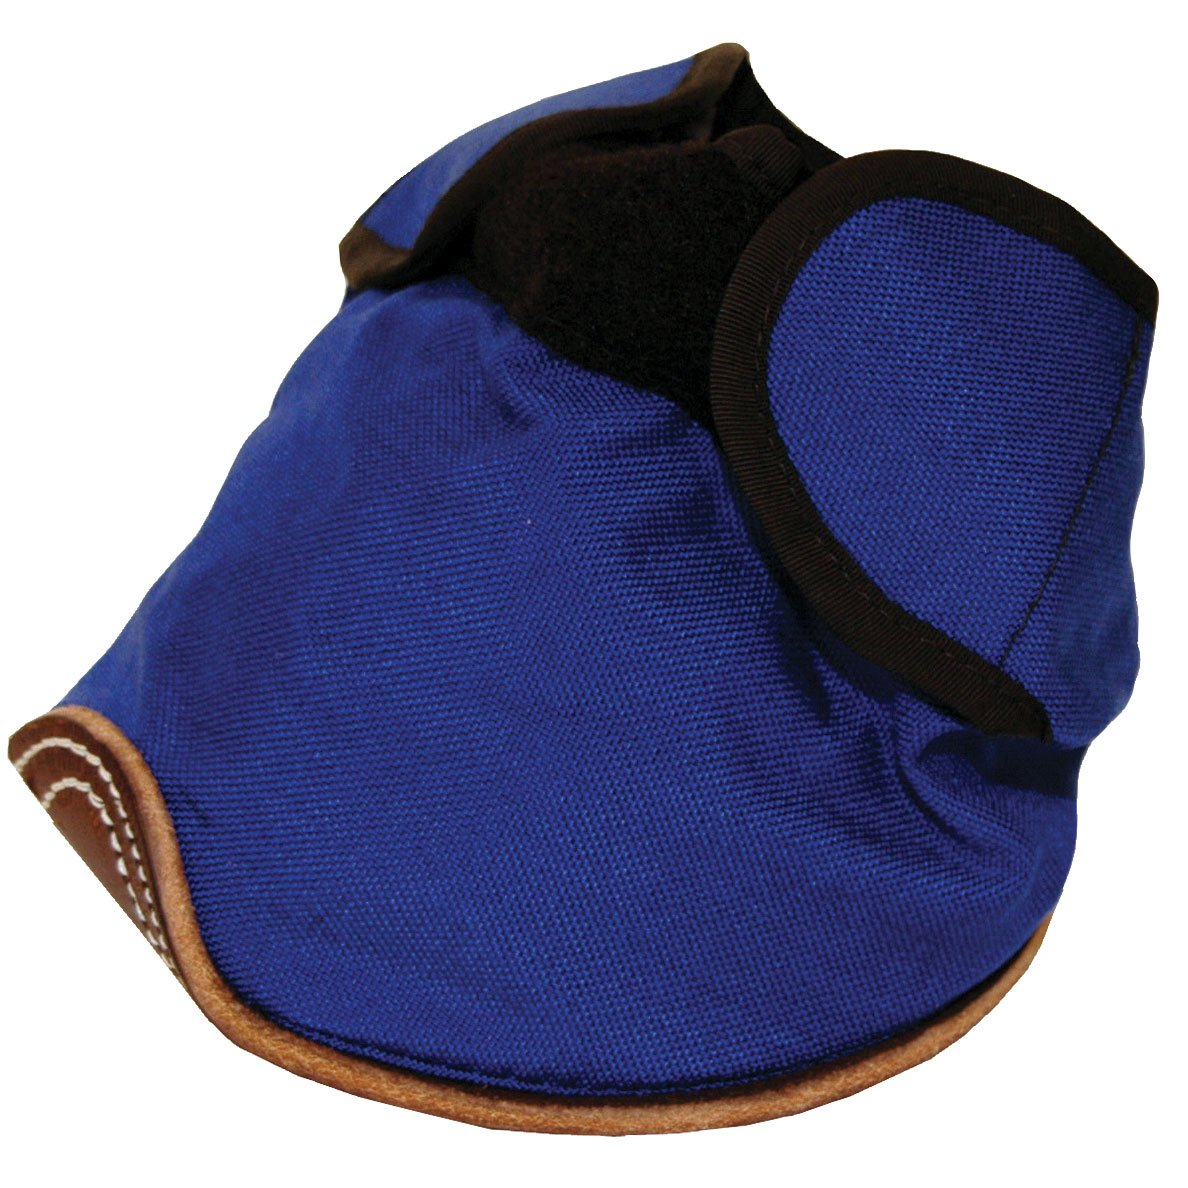 Deluxe Equine Slipper in Medium by Bluegrass Equine Products